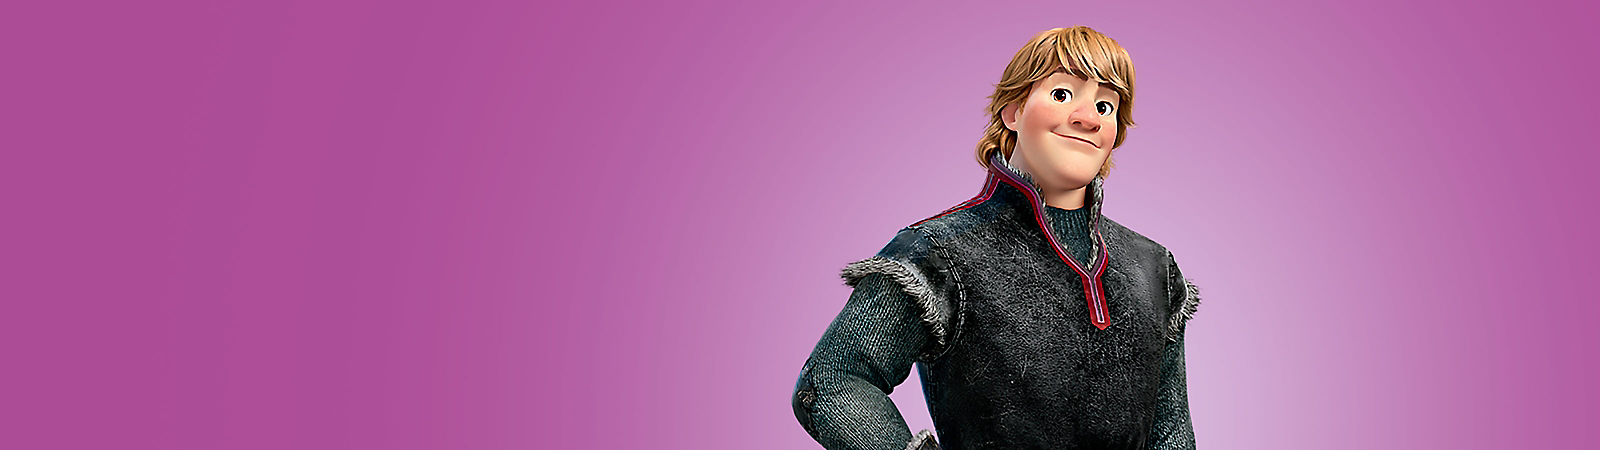 Background image of Kristoff